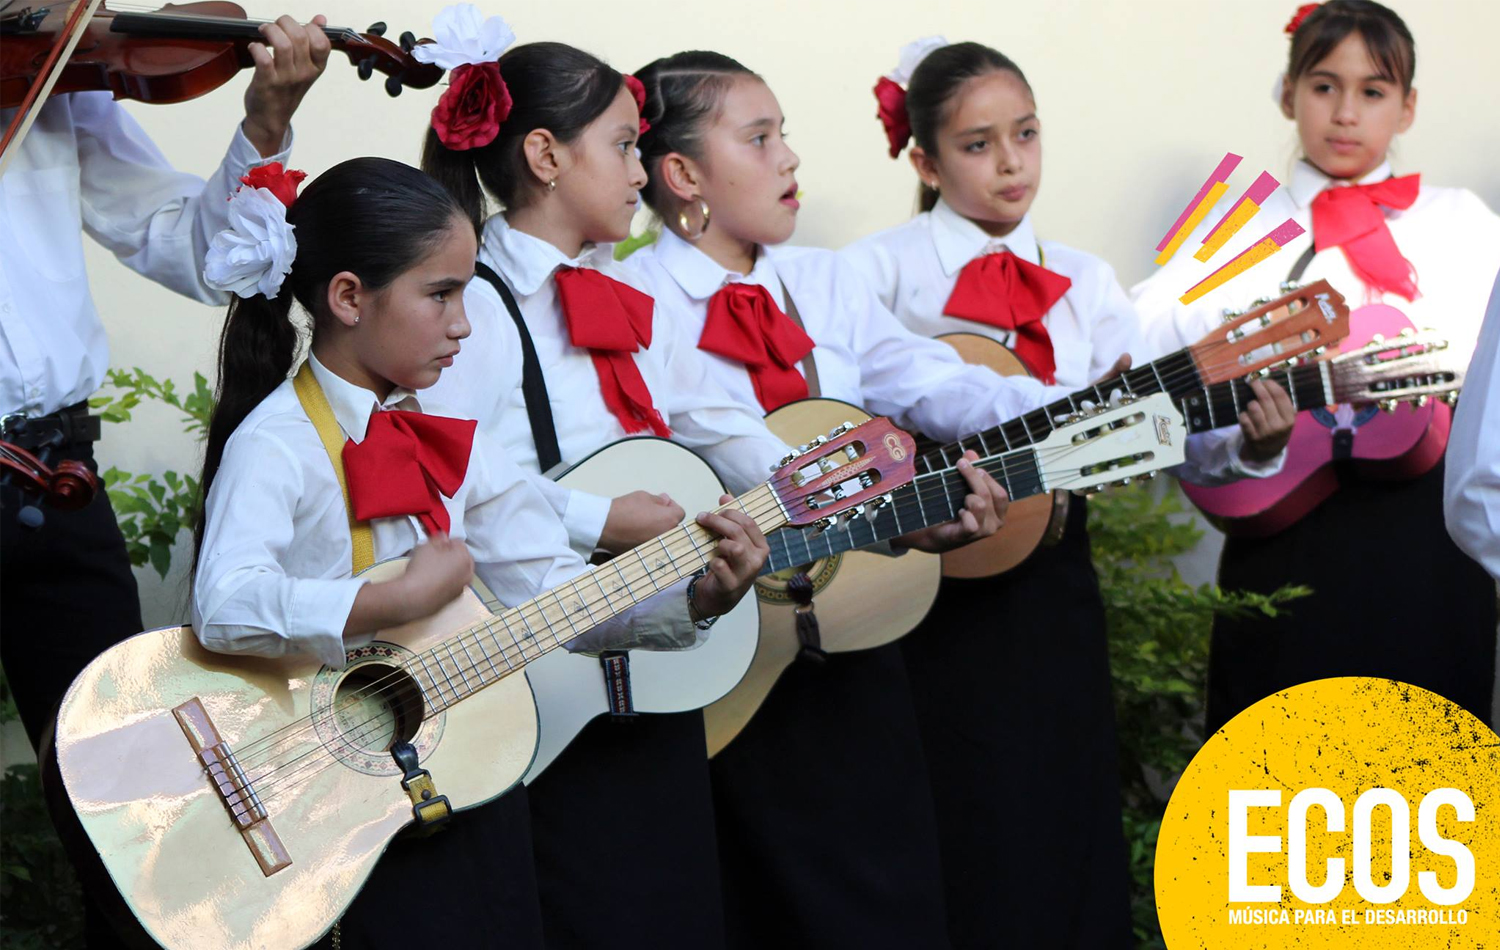 Music education helps the social and emotional development of children in Jalisco, Mexico